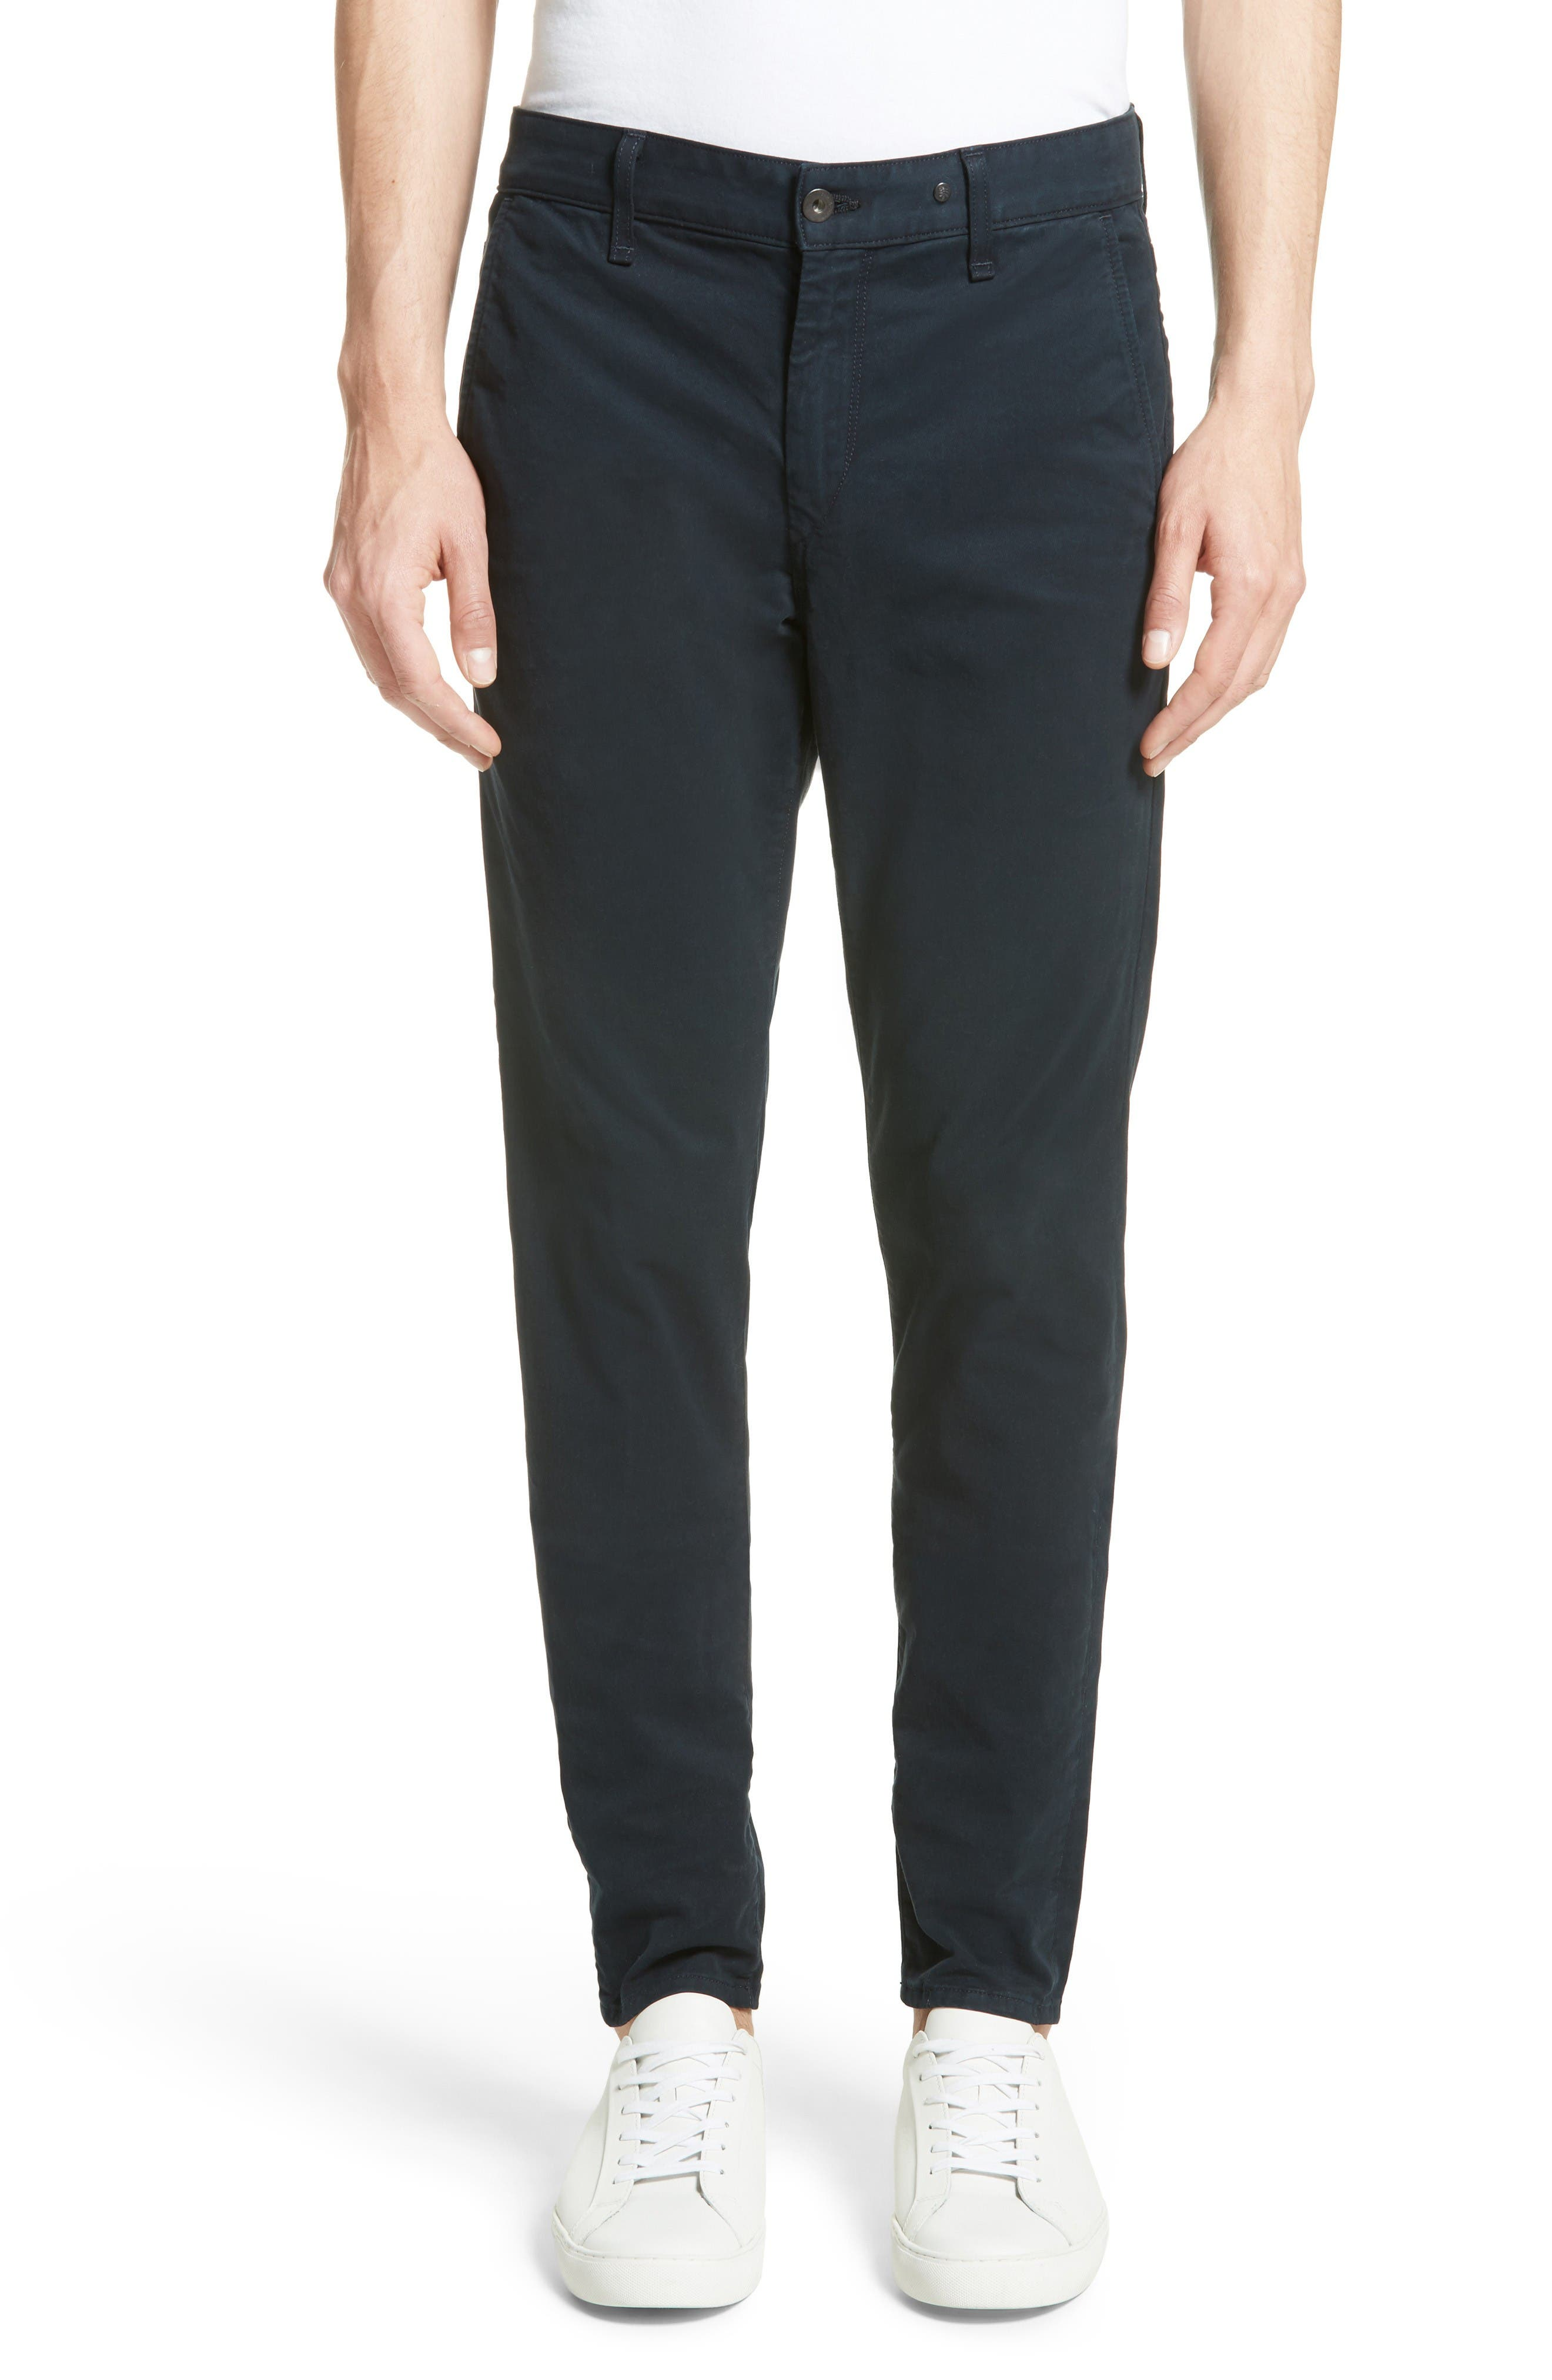 Fit 2 Slim Fit Chinos,                         Main,                         color, Navy